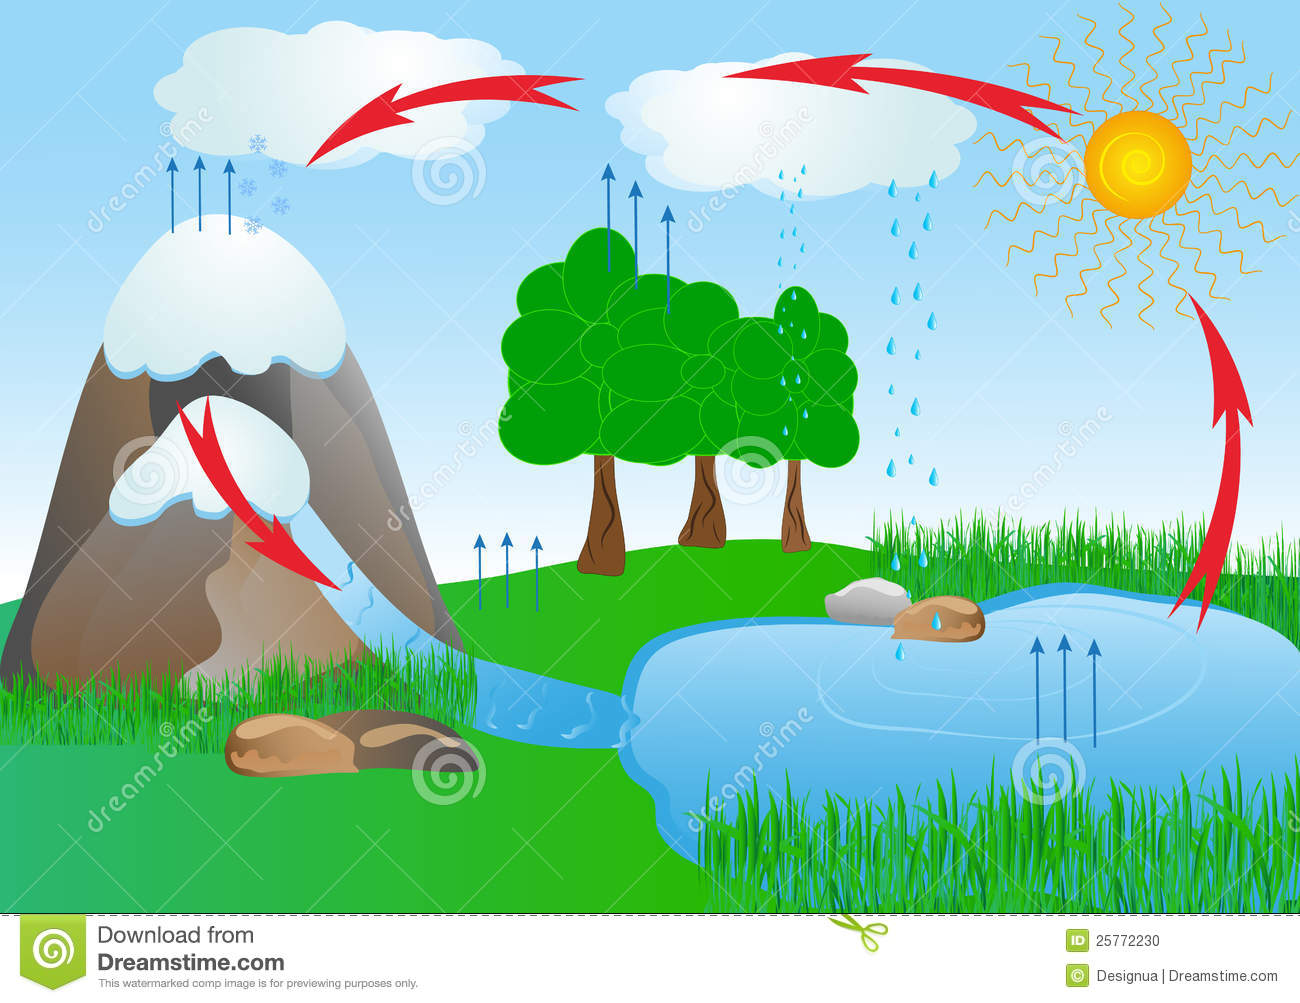 cycle water in nature environment oxygen stock vector rh dreamstime com Save the Environment Clip Art Environment C